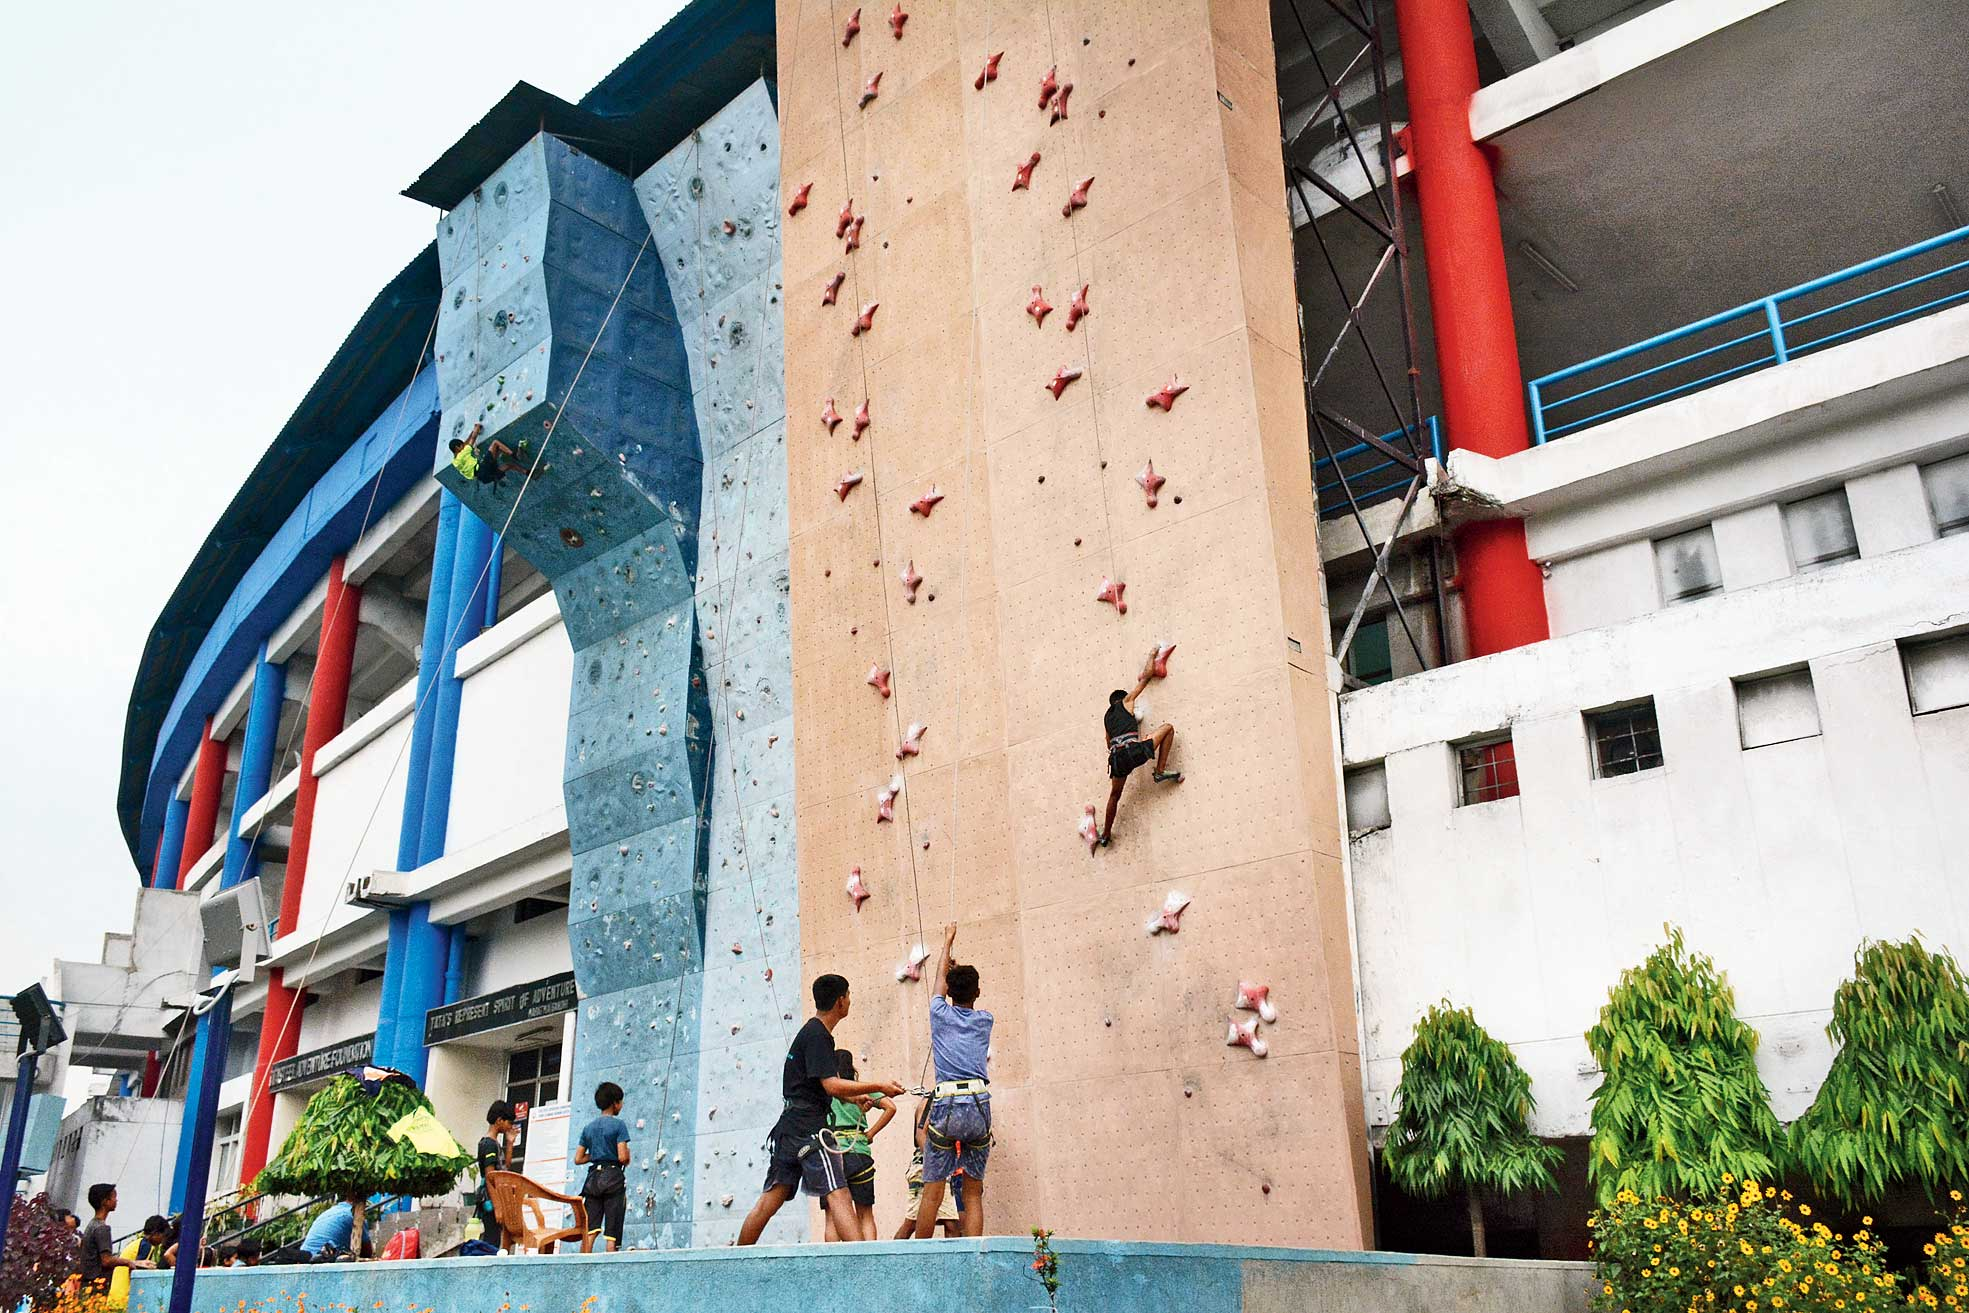 Trainees practise sport climbing at JRD Tata complex in Jamshedpur.